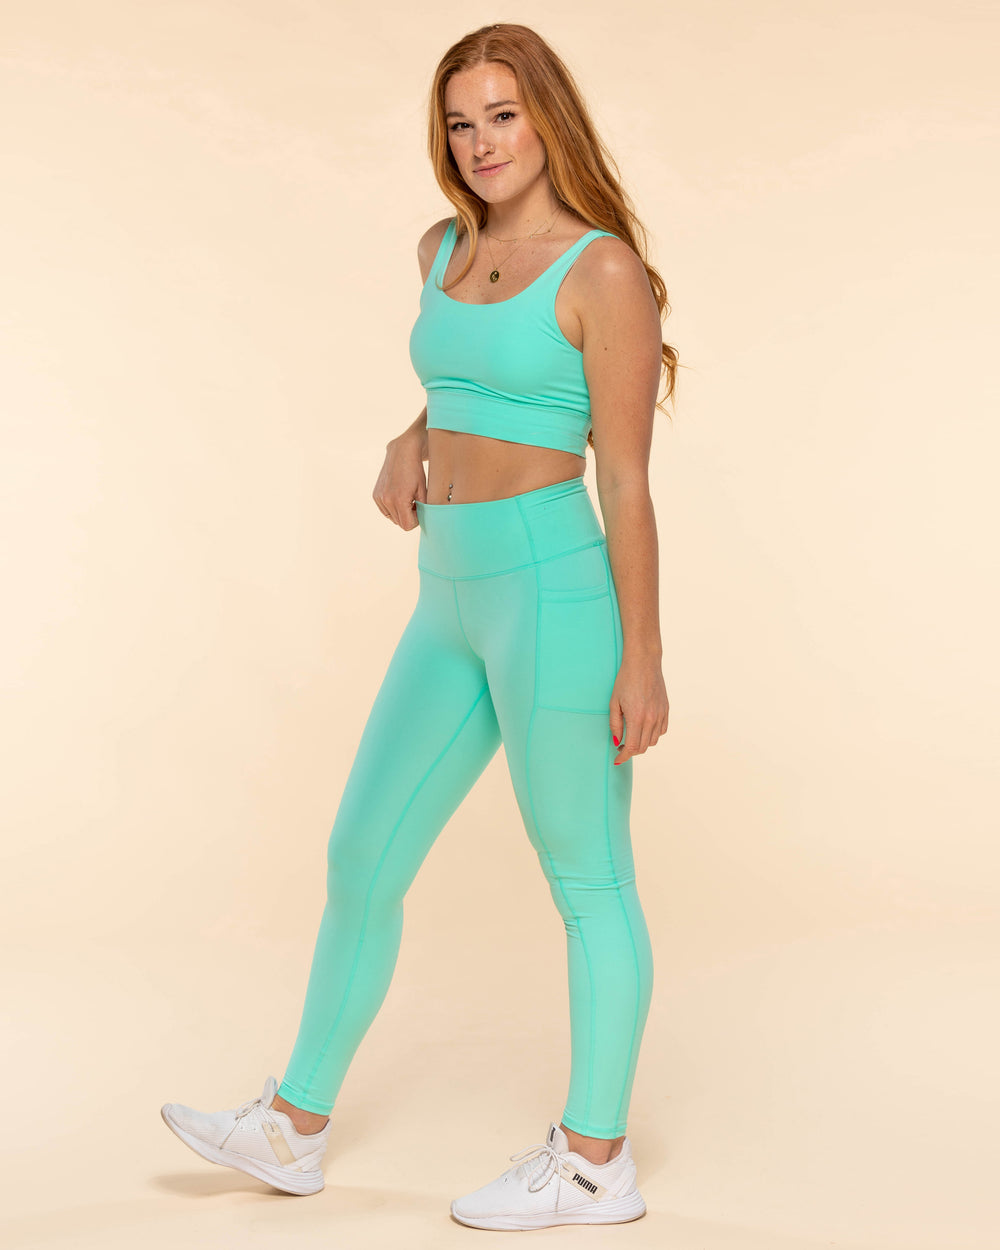 All Day Leggings - Seafoam